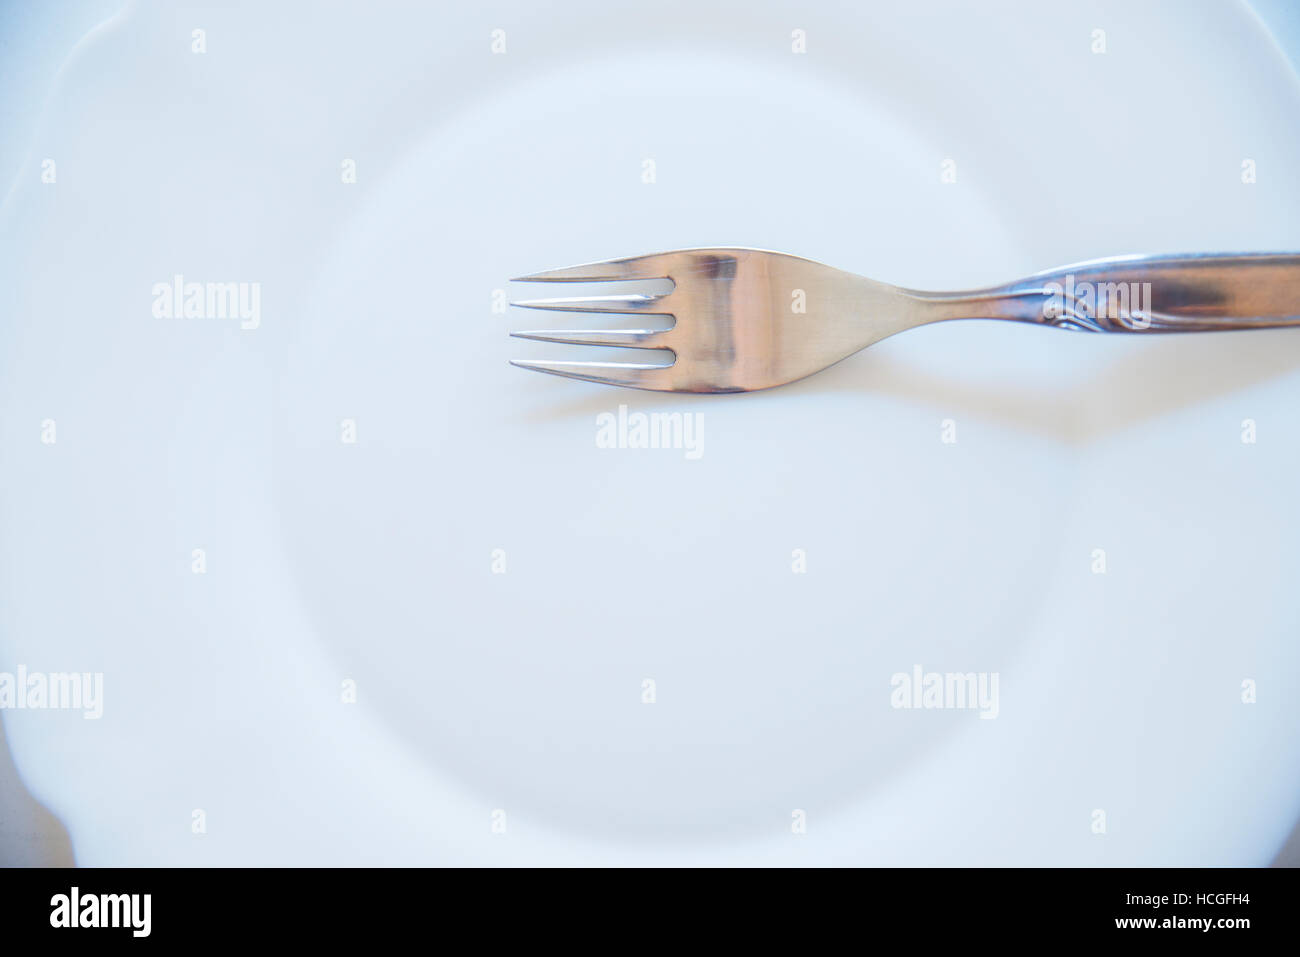 Fork on empty dish. - Stock Image